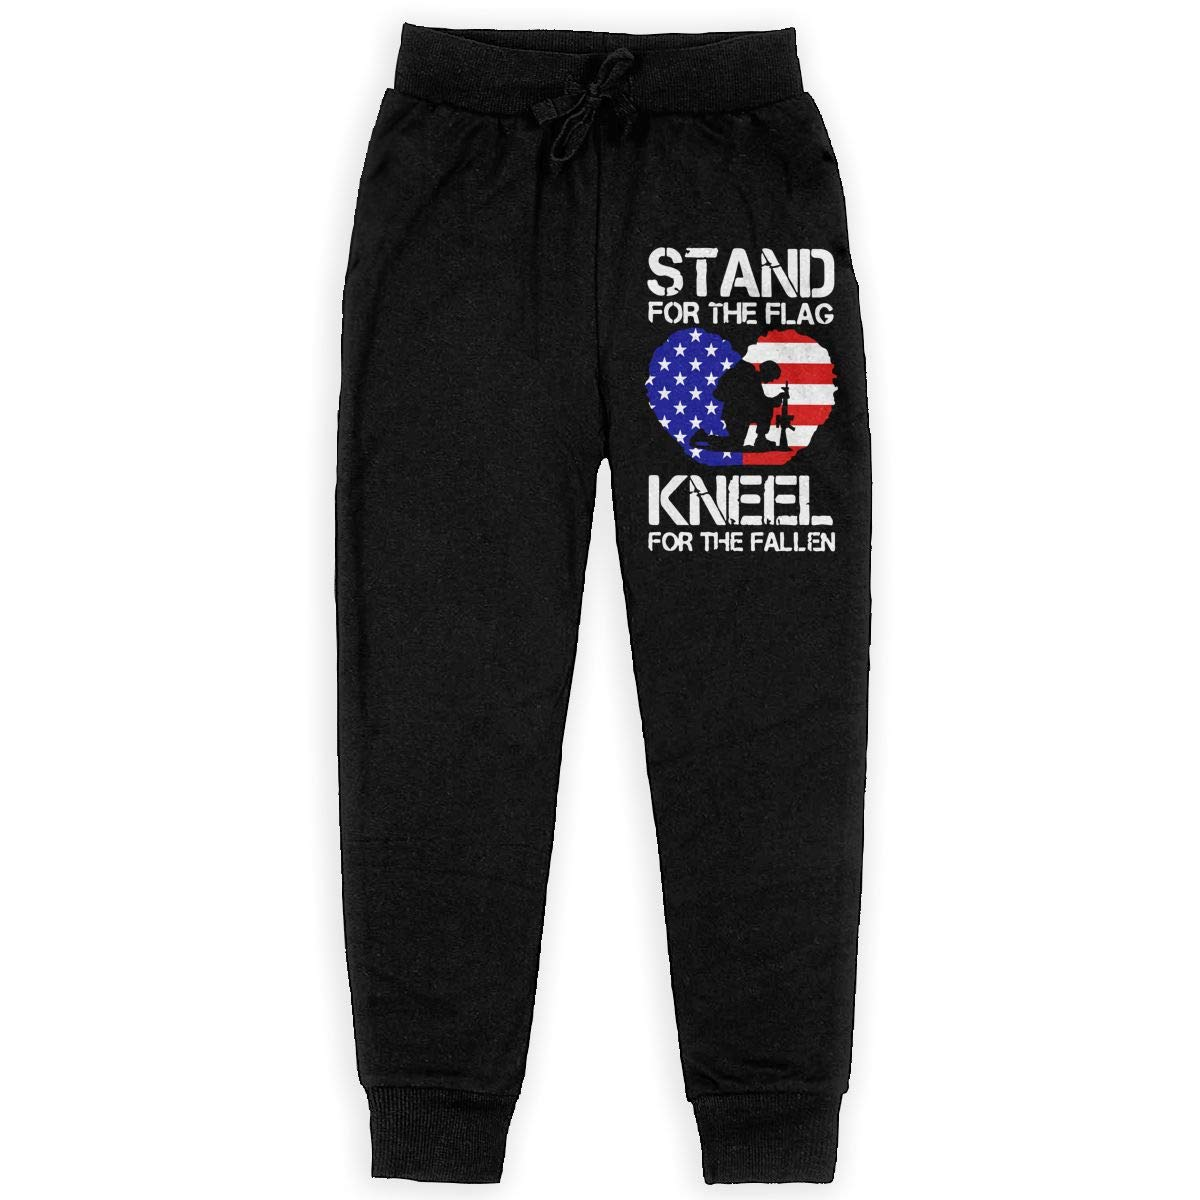 Youth Warm Fleece Active Pants for Teenager Boys Kneel for The Fallen Soft//Cozy Sweatpants Stand for The Flag